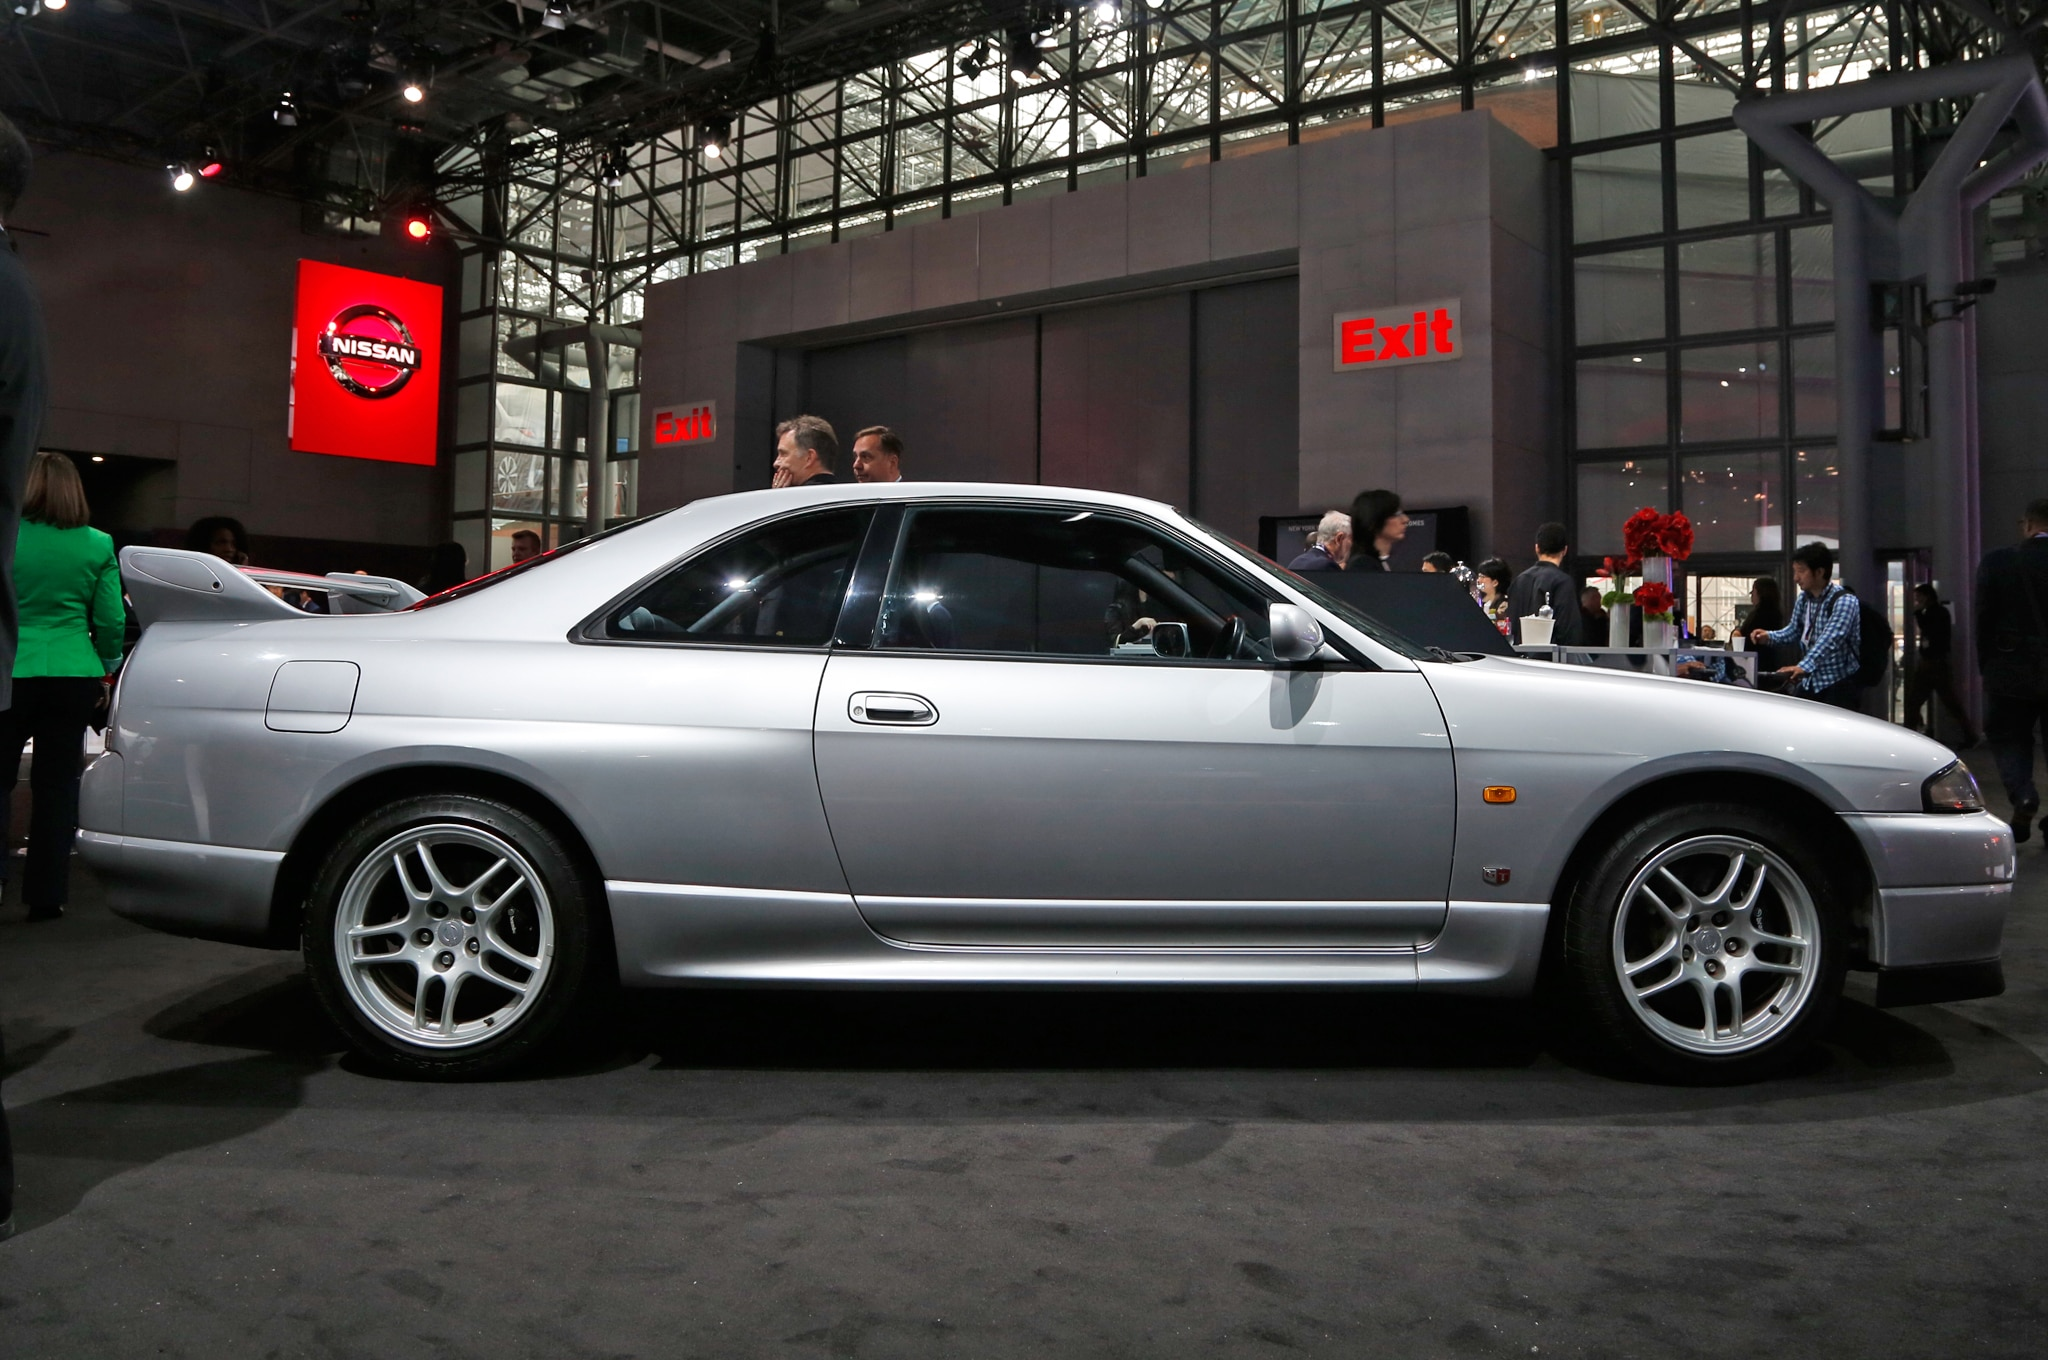 Nissan gt r genealogy tracing the roots of the supercar killer the vanachro Choice Image